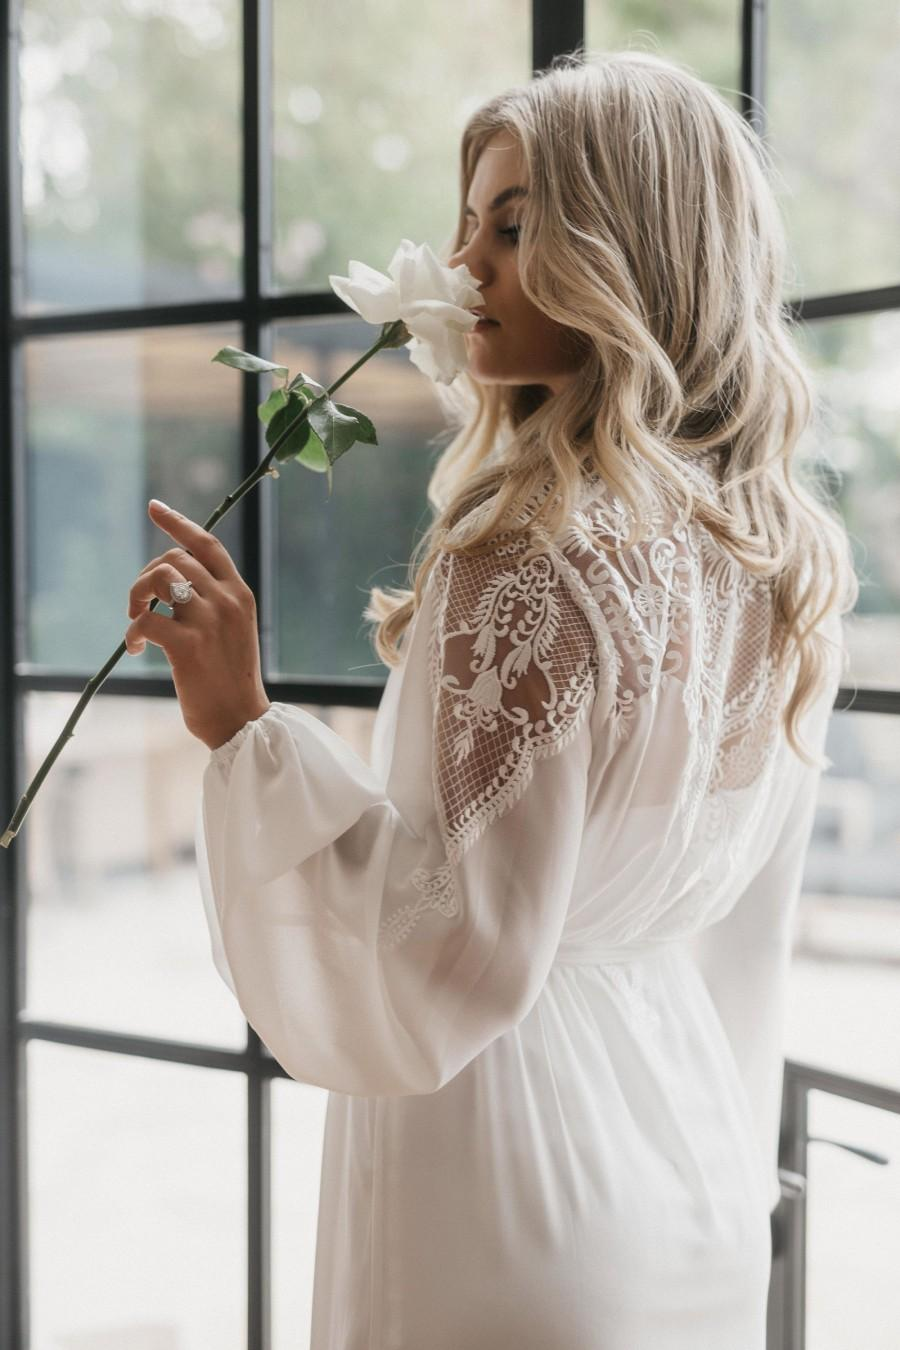 Hochzeit - Lace Maxi Robe Including Slip / Lace Bridal Robe / Bridesmaid Robes / Robe / Bridal Robe / Bride Robe / Bridal Party Robes / LUNA